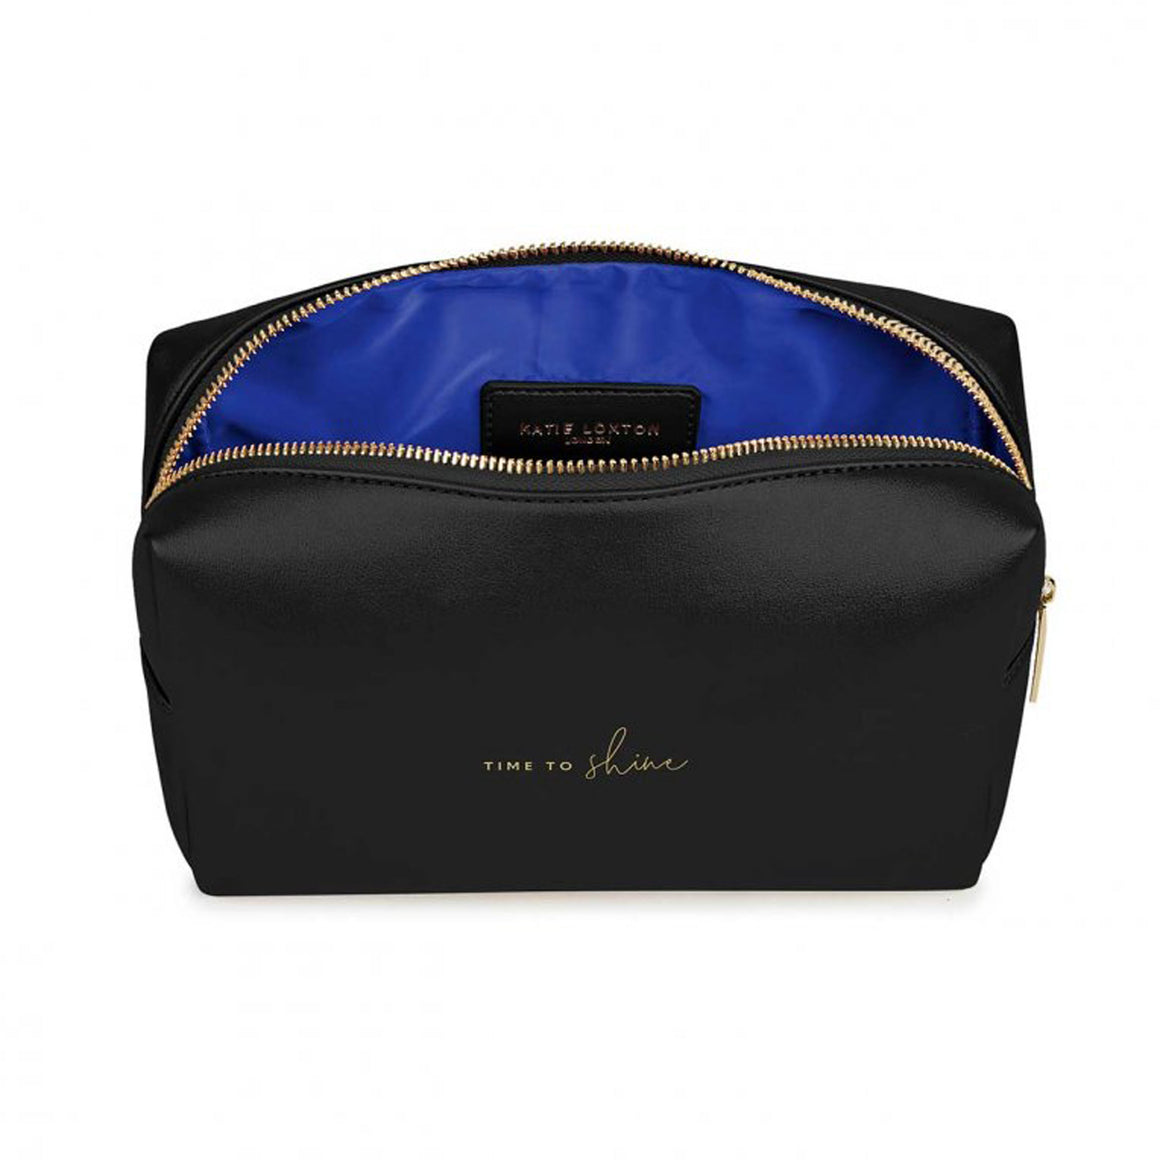 Colour Pop Washbag for Women in Black